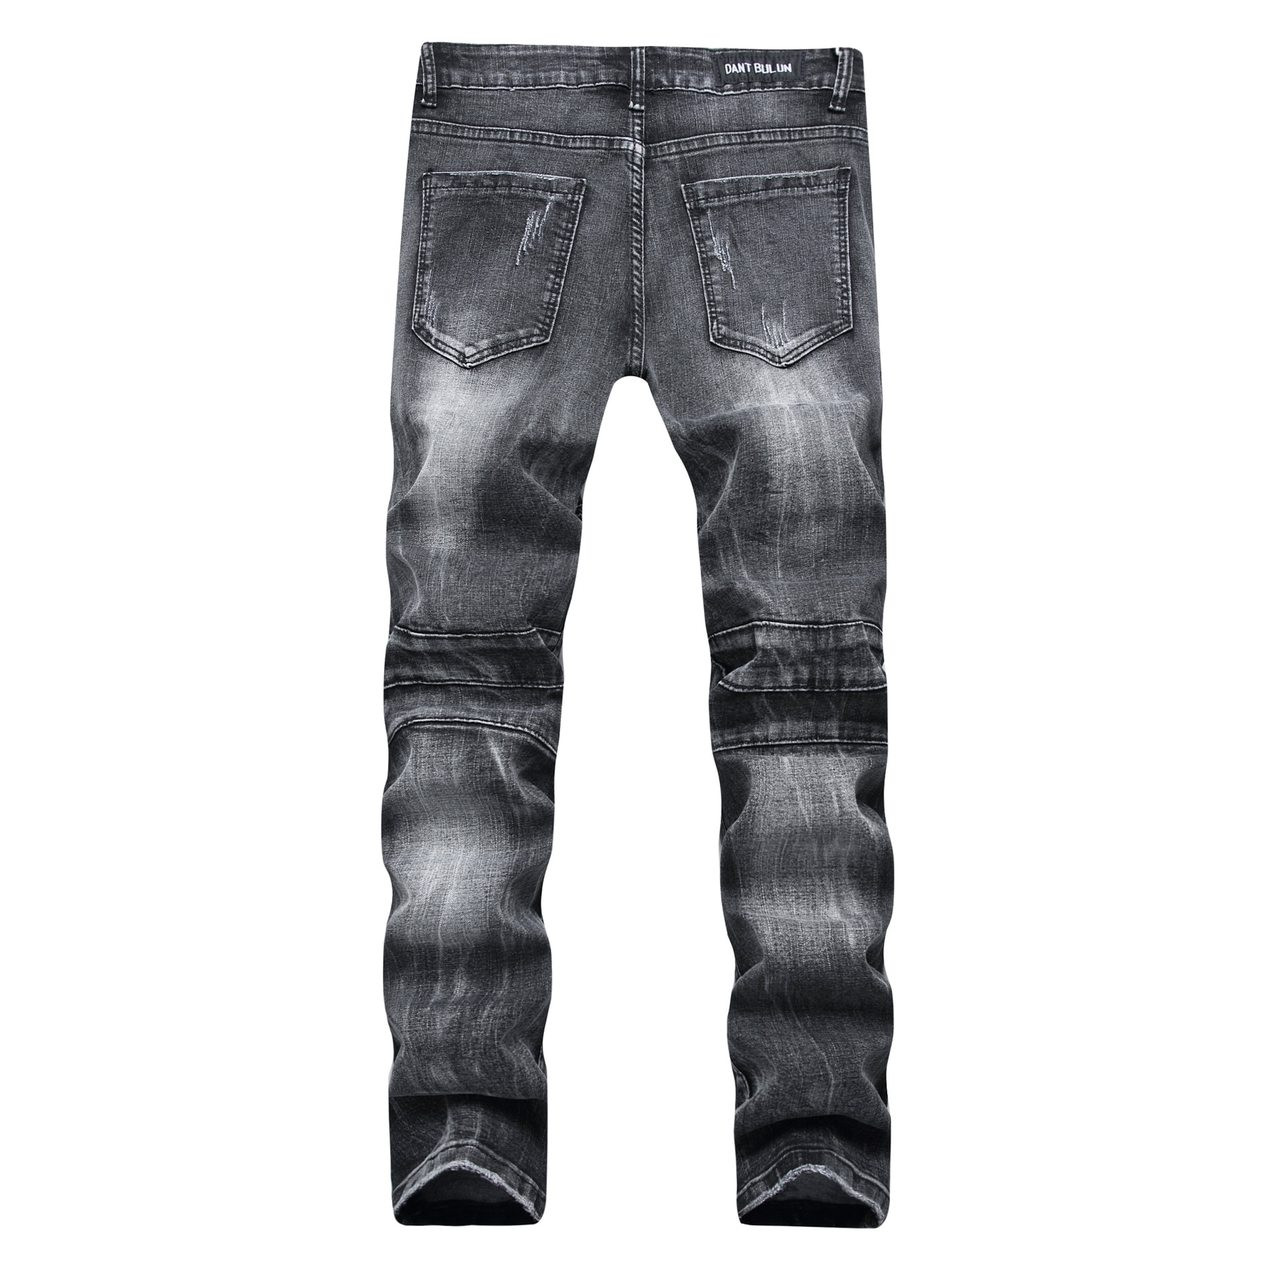 perfect quality hoard as a rare commodity classic shoes YUANL SH New Ripped Jeans Men Stretch Cargo Denim Biker Jeans with Zippers  Pleated straight brand jeans Men's Scratched Pants